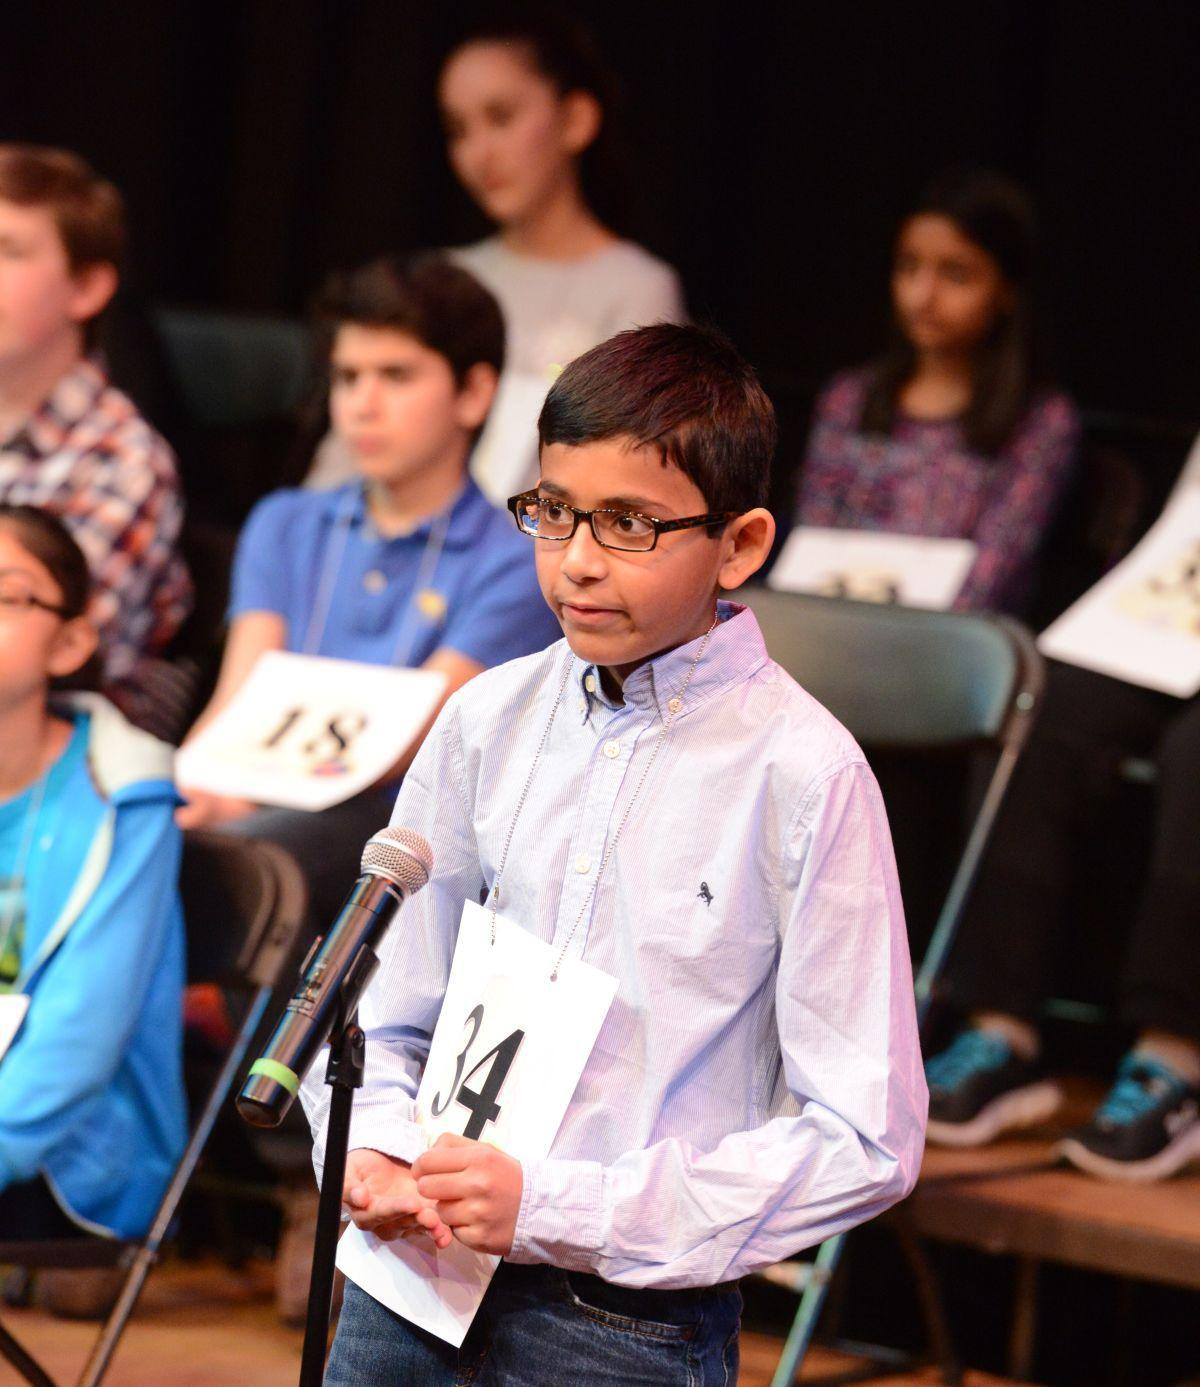 Holland Brook School fifth grader wins Discover Lehigh Valley Regional Spelling Bee